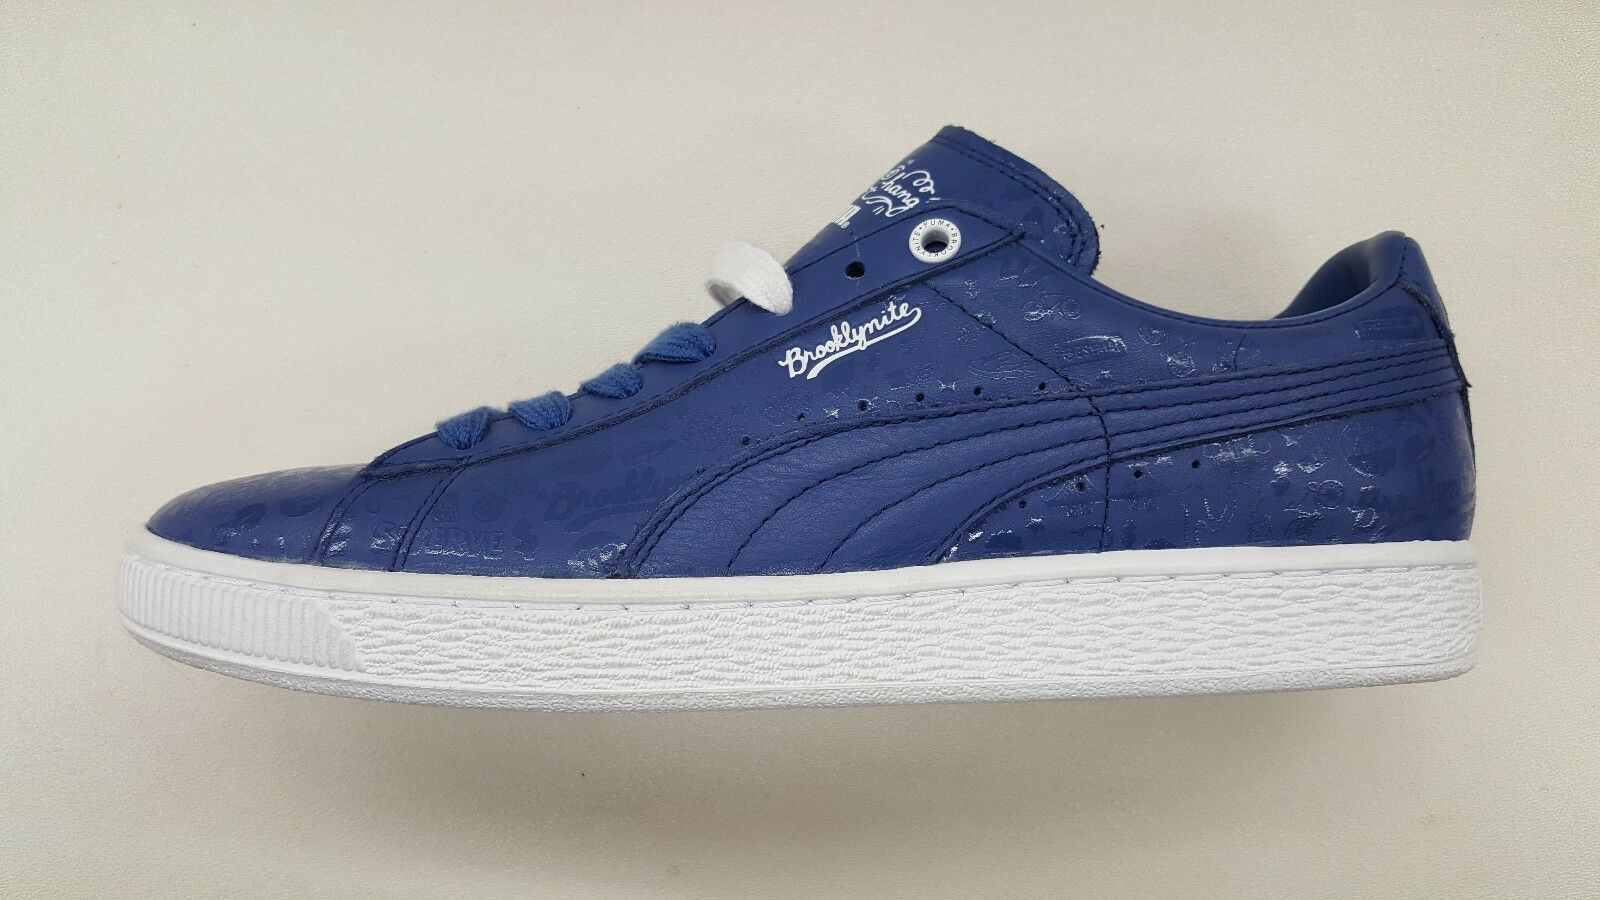 Puma Basket Classic X Sophia Chang Brooklynite bluee Men shoes 357296-02 1705-74